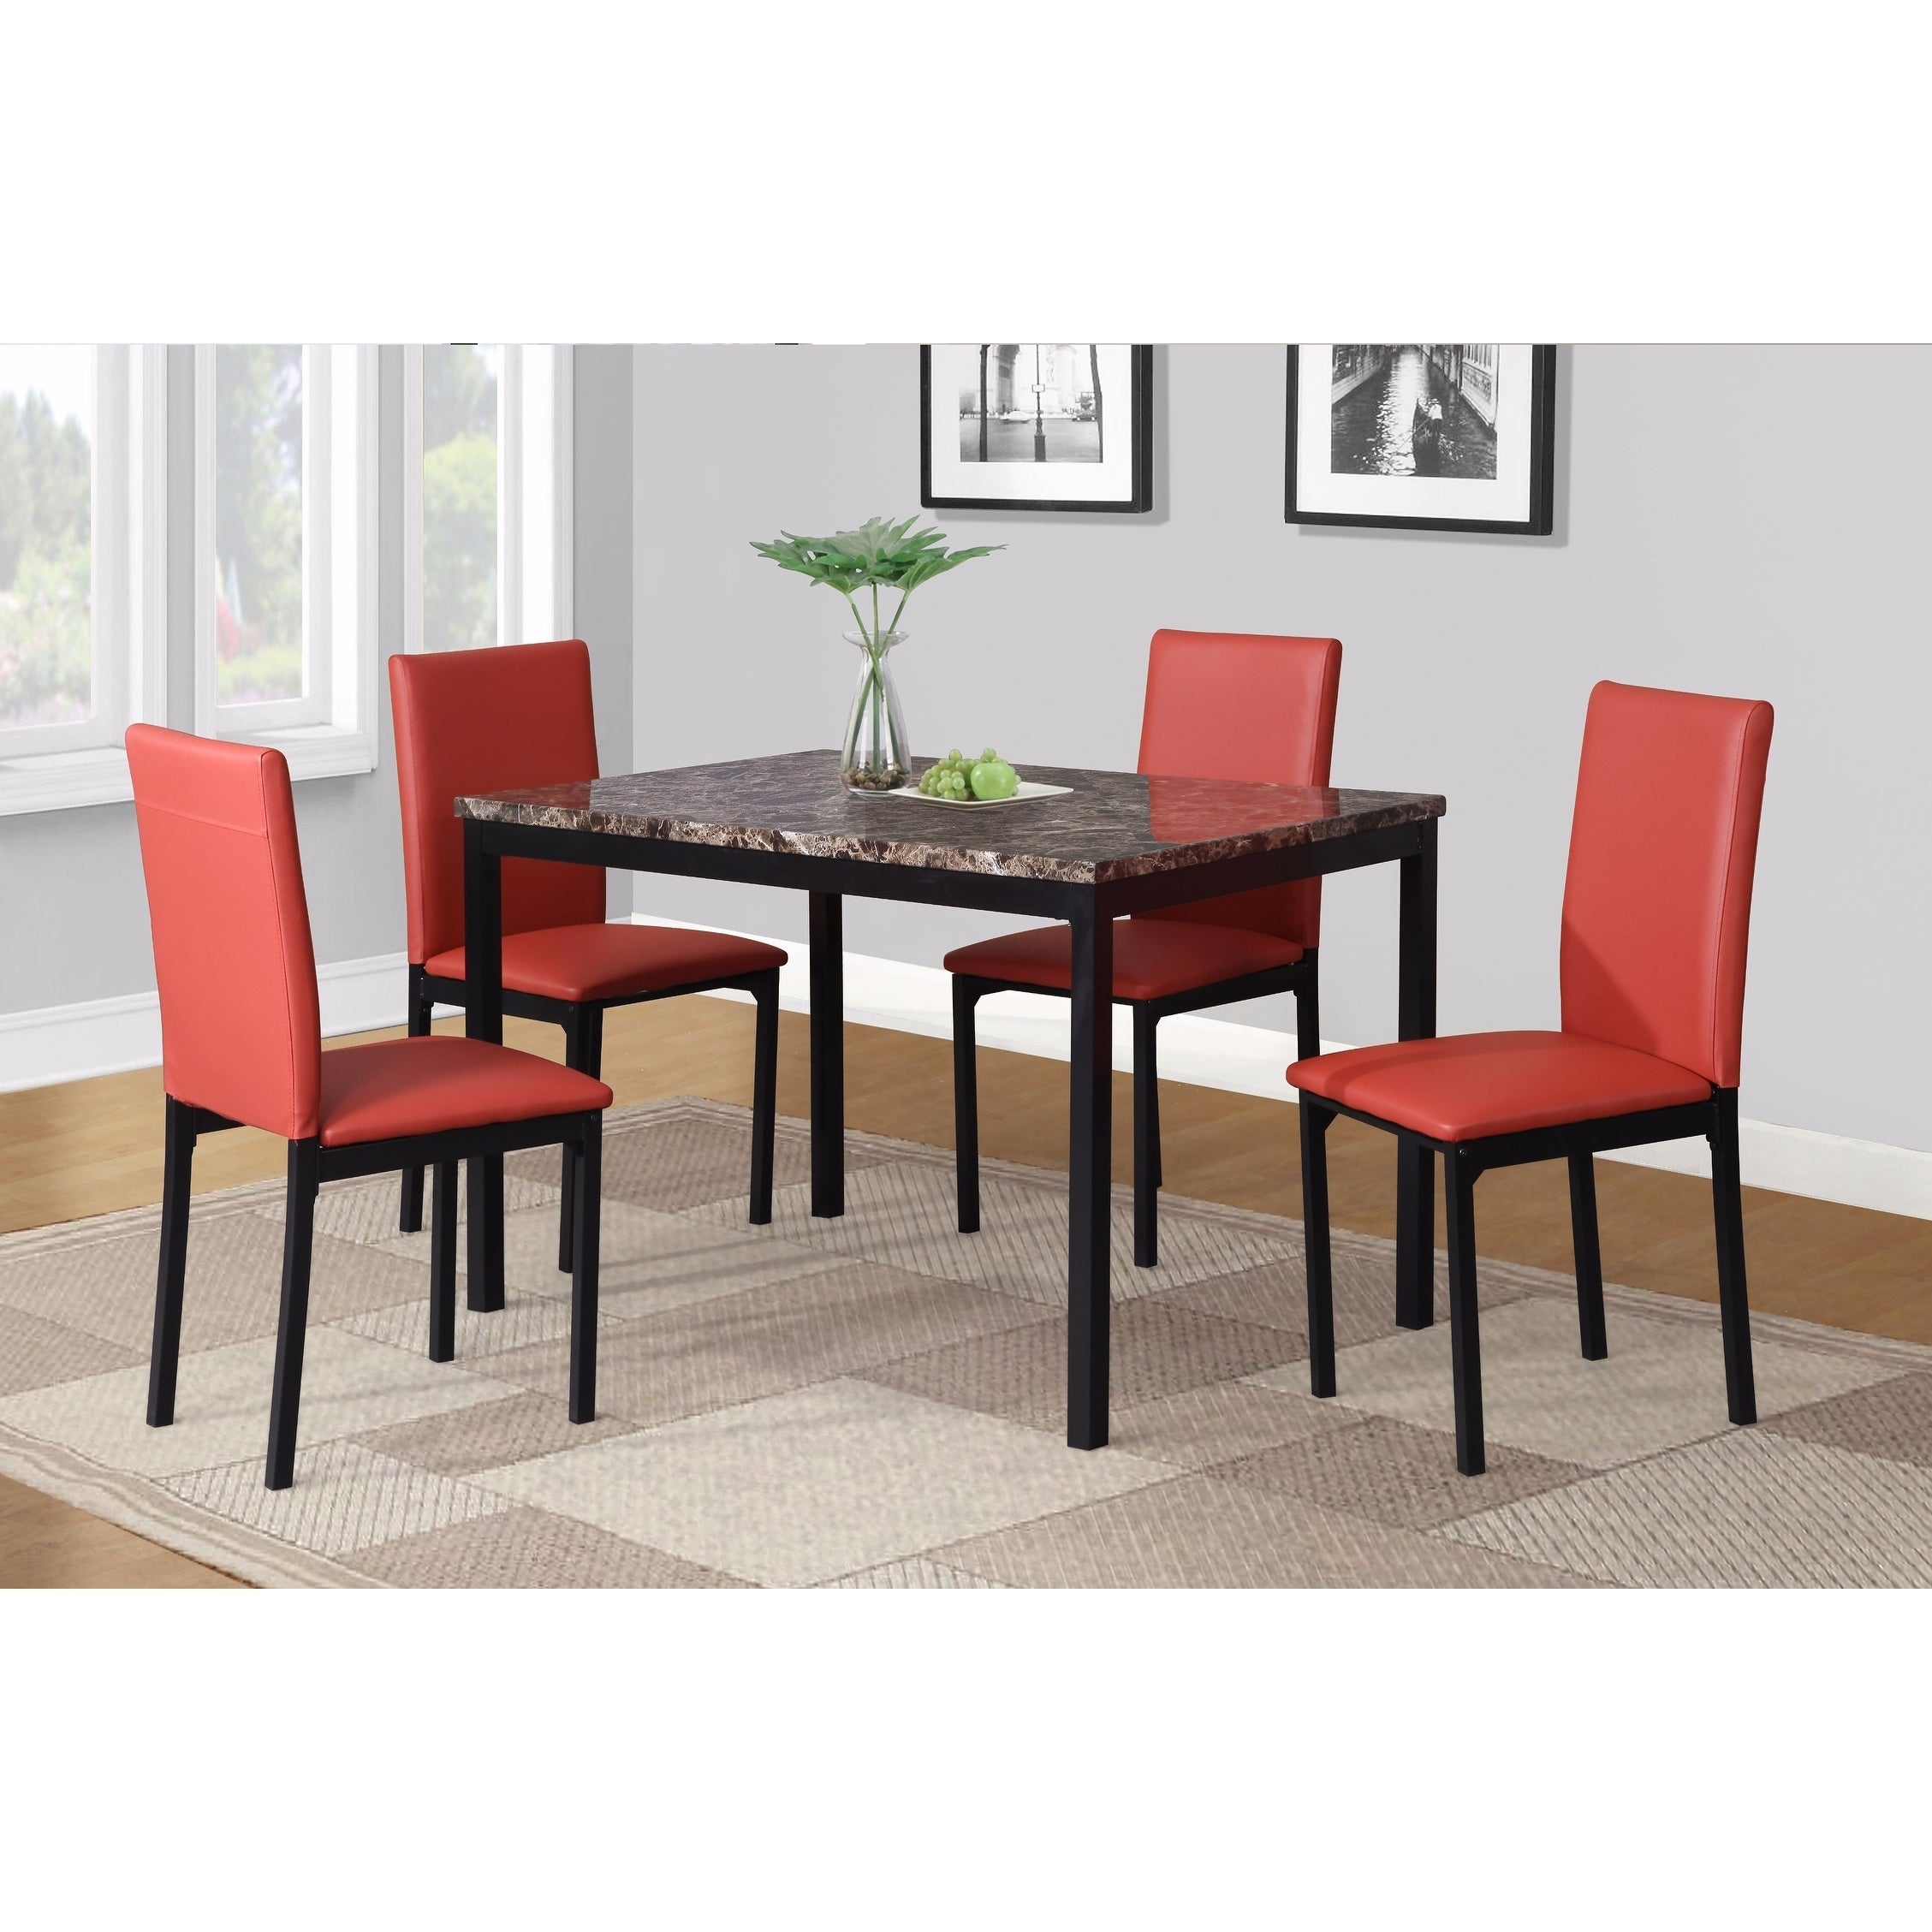 Newest Shop Noyes Faux Leather Seat Metal Frame Black Dining Chairs, Set Of With Regard To Noyes 5 Piece Dining Sets (#4 of 20)